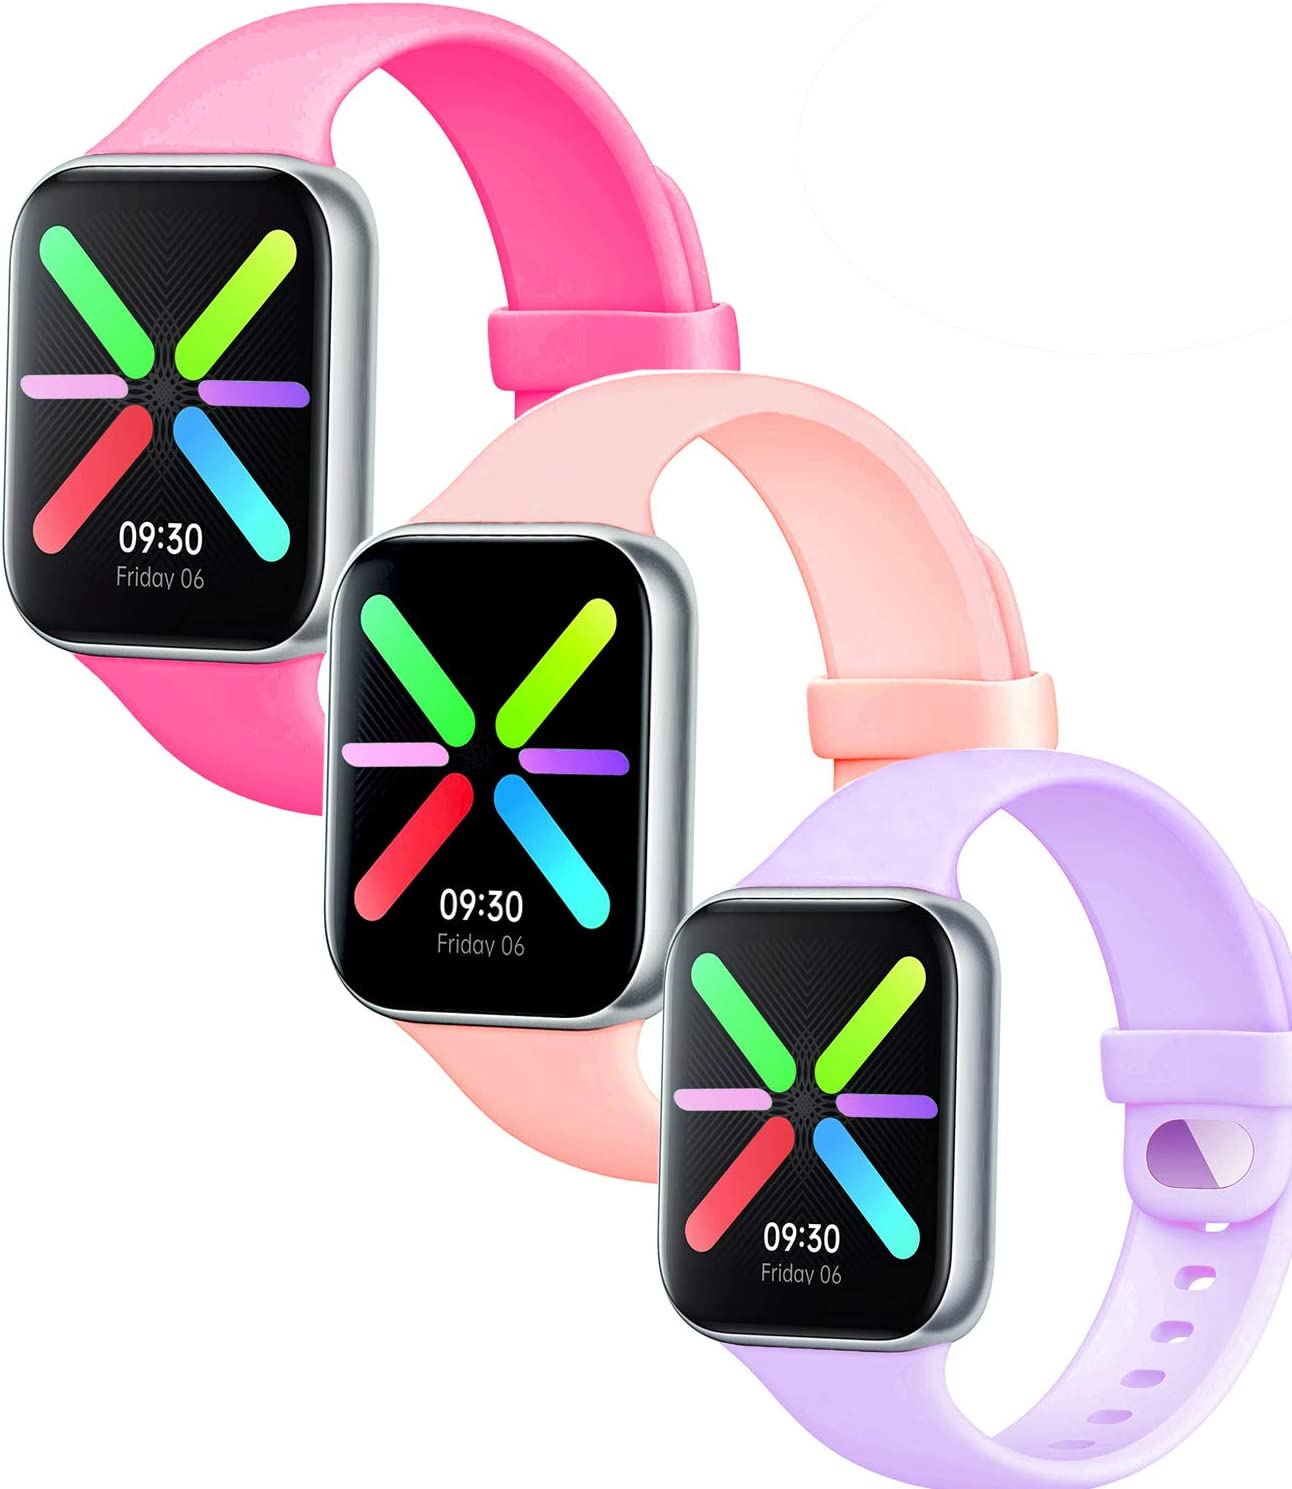 Lesampo 38mm 40mm 42mm 44mm iWatch Sport Bands Compatible with Apple Watch Series 5 4 3 2 1 and Compatible with Nike+ Watch (Grapefruit-Purble-Bobby, (42mm/44mm) S/M)